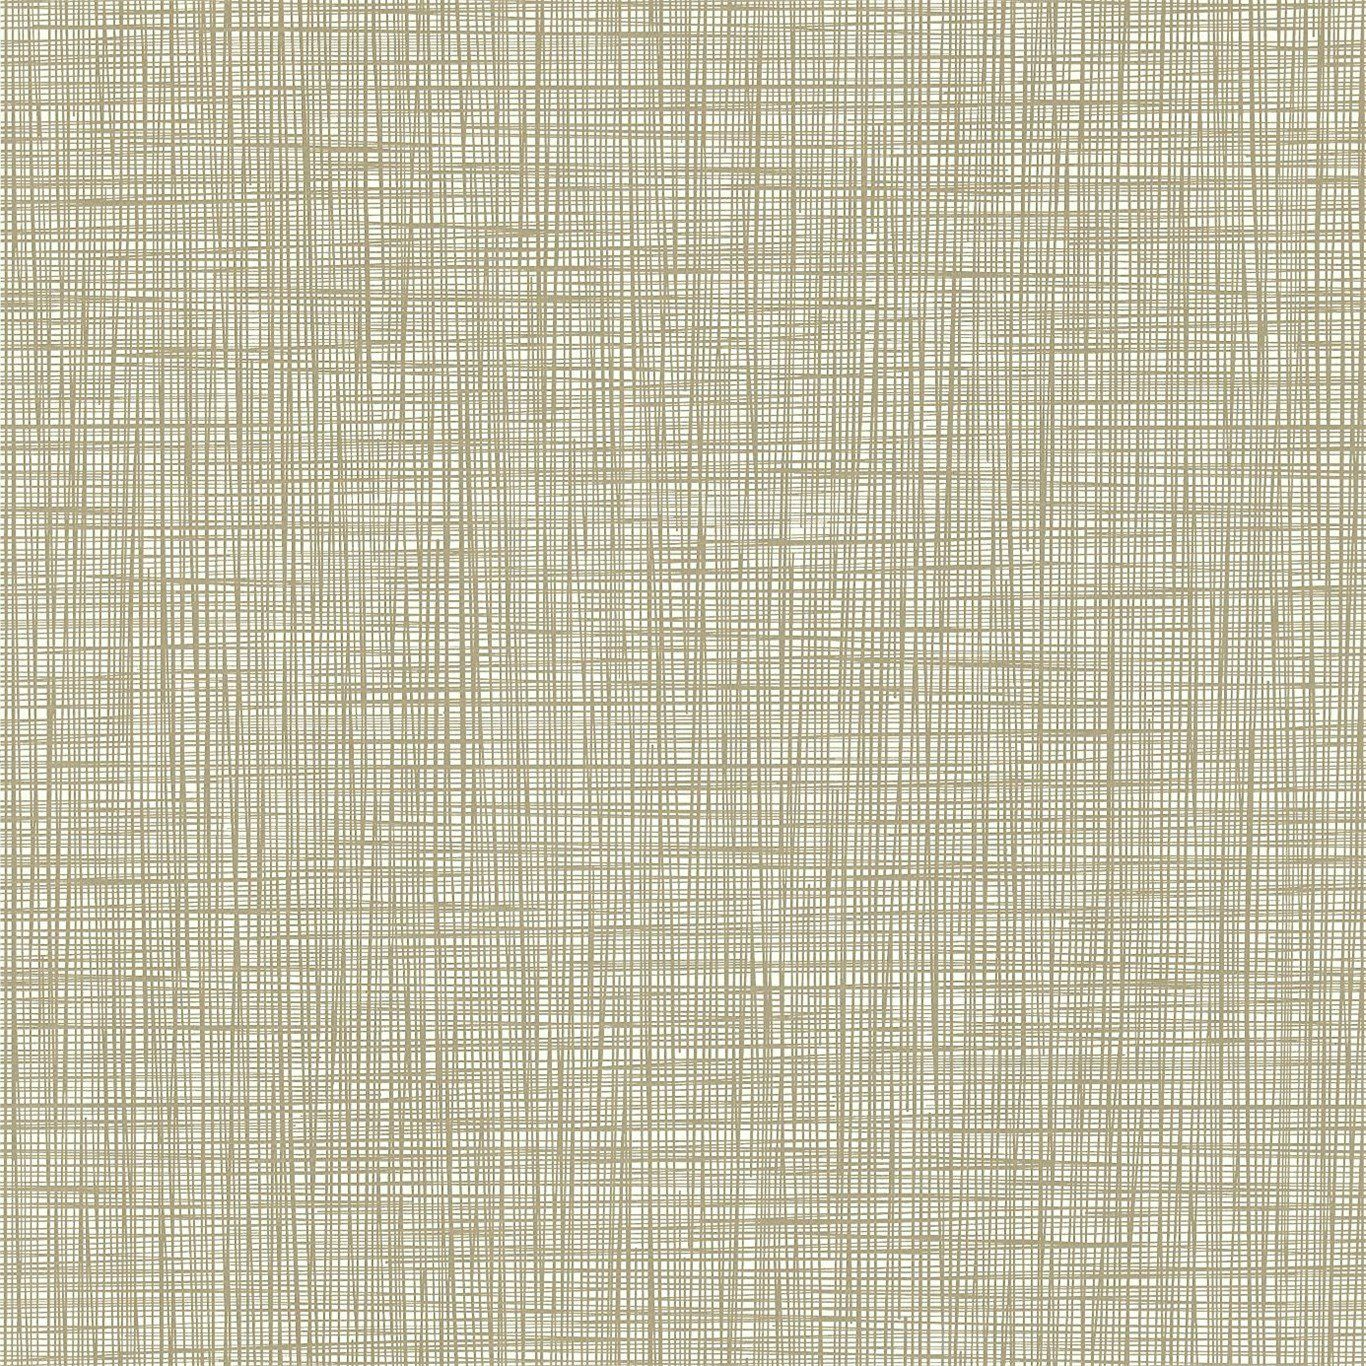 Scribble Wallpaper Orla kiely, Harlequin wallpaper